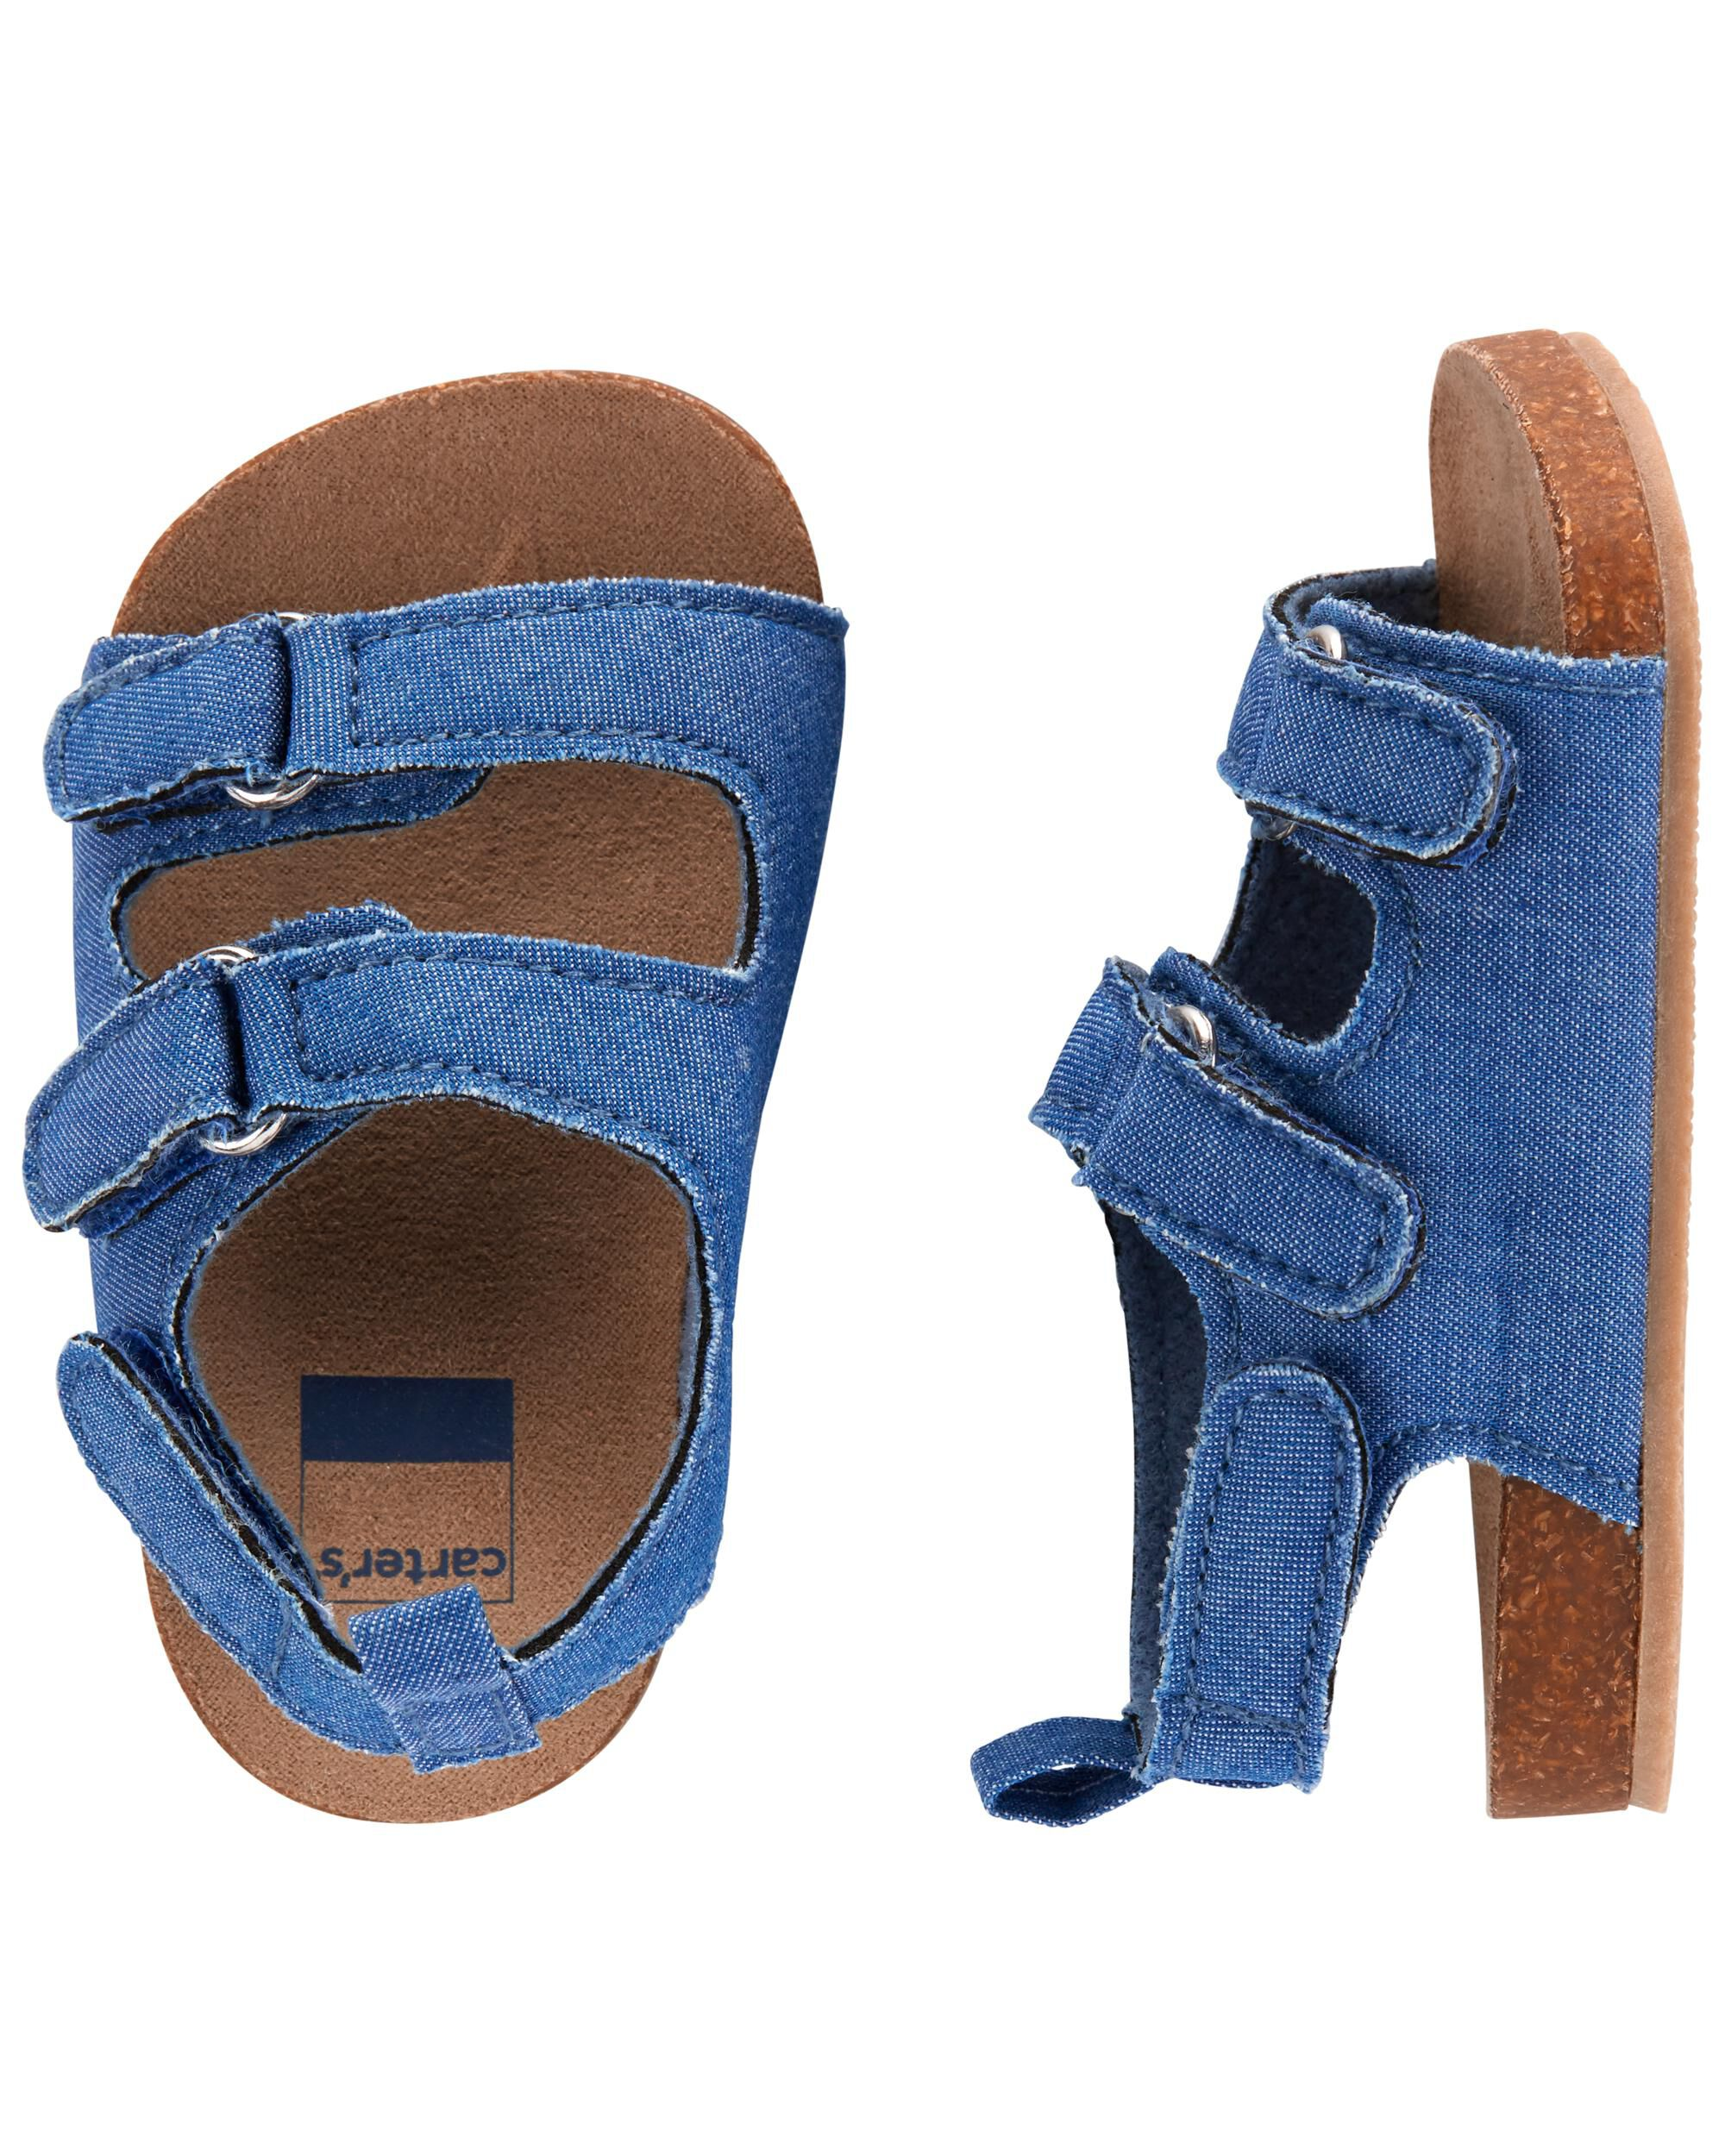 Carters Cork Sandal Baby Shoes